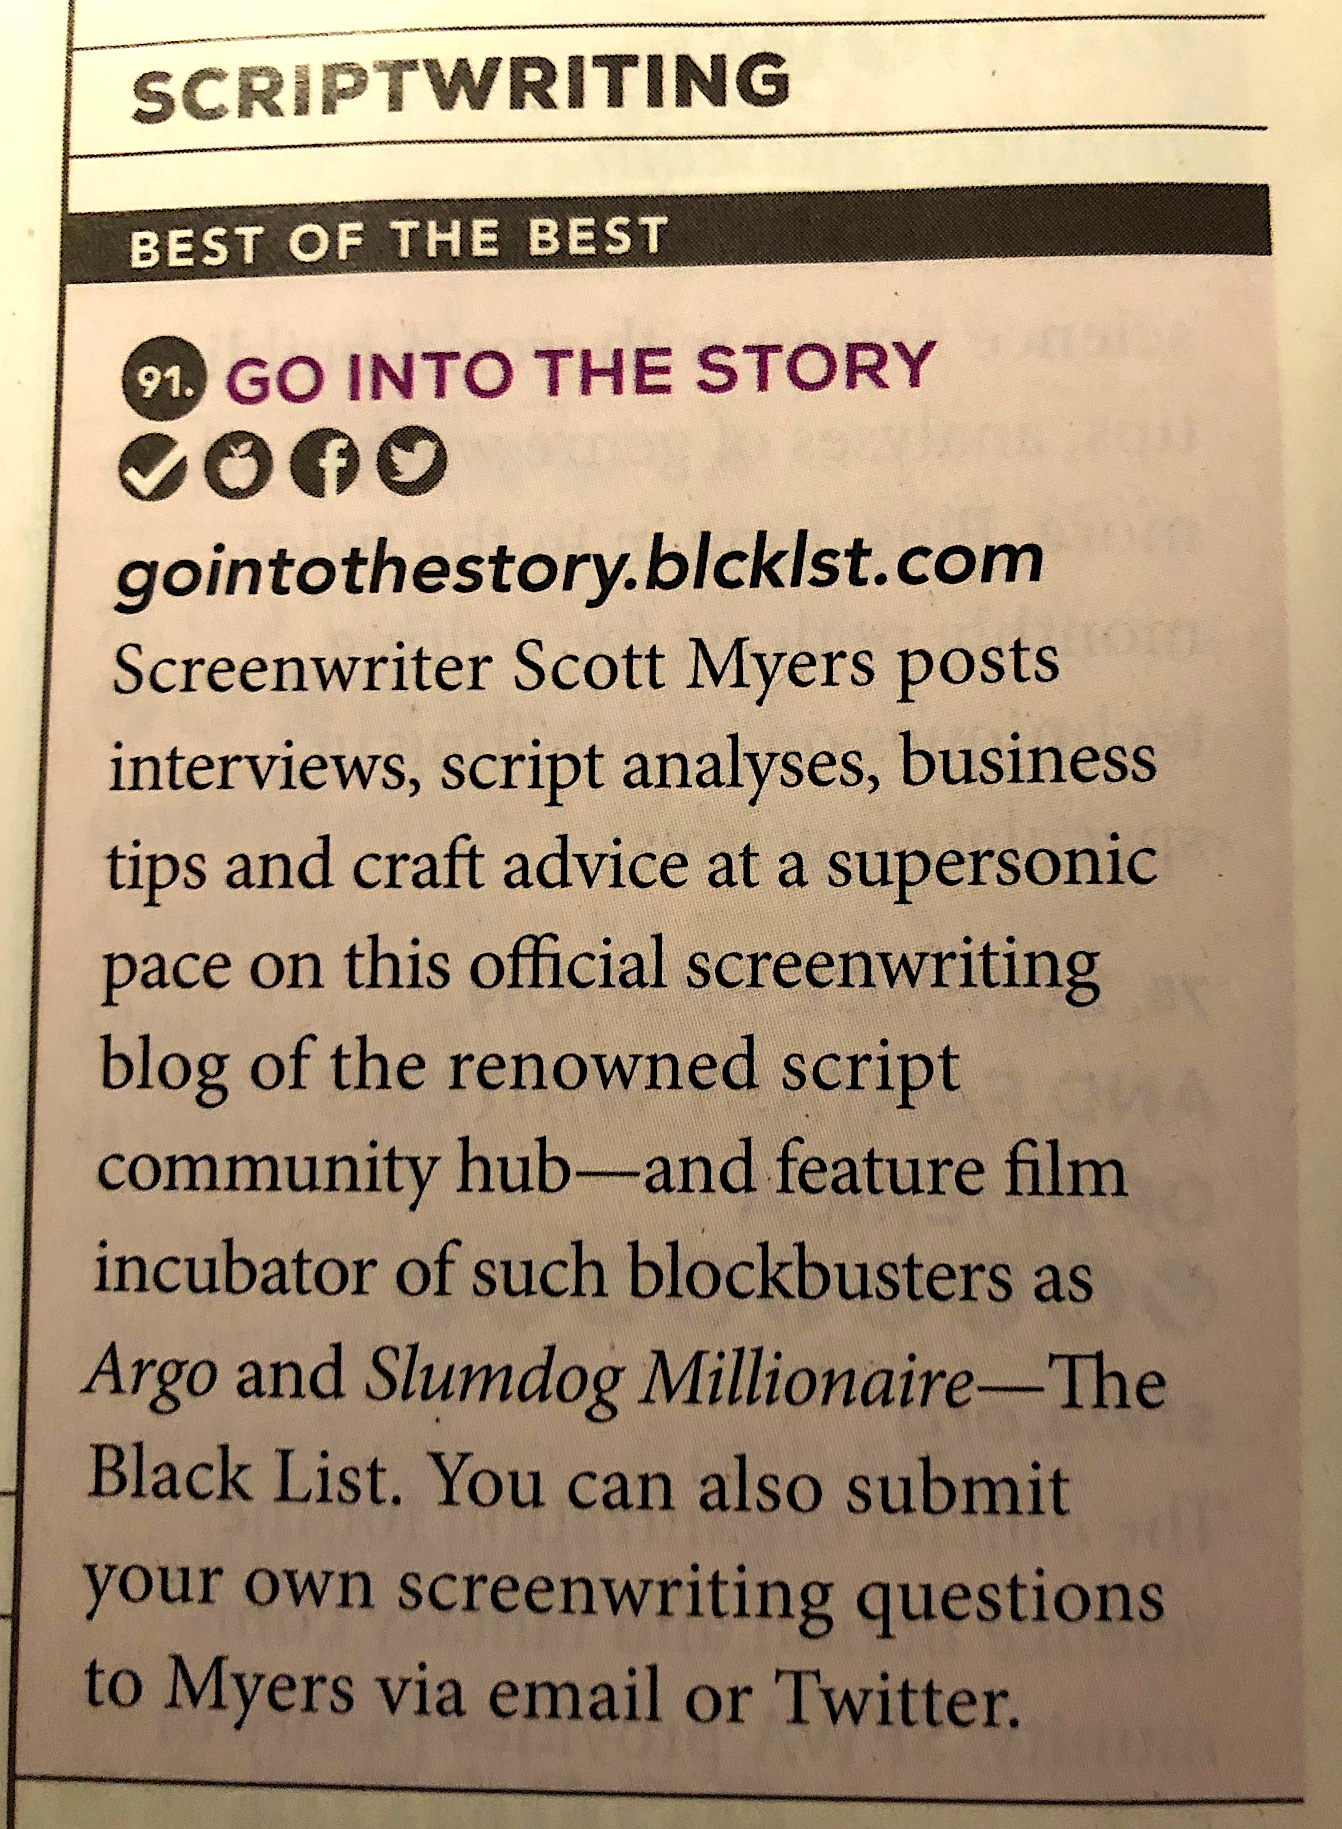 """Go Into The Story: """"Best of the Best"""" Scriptwriting Website"""